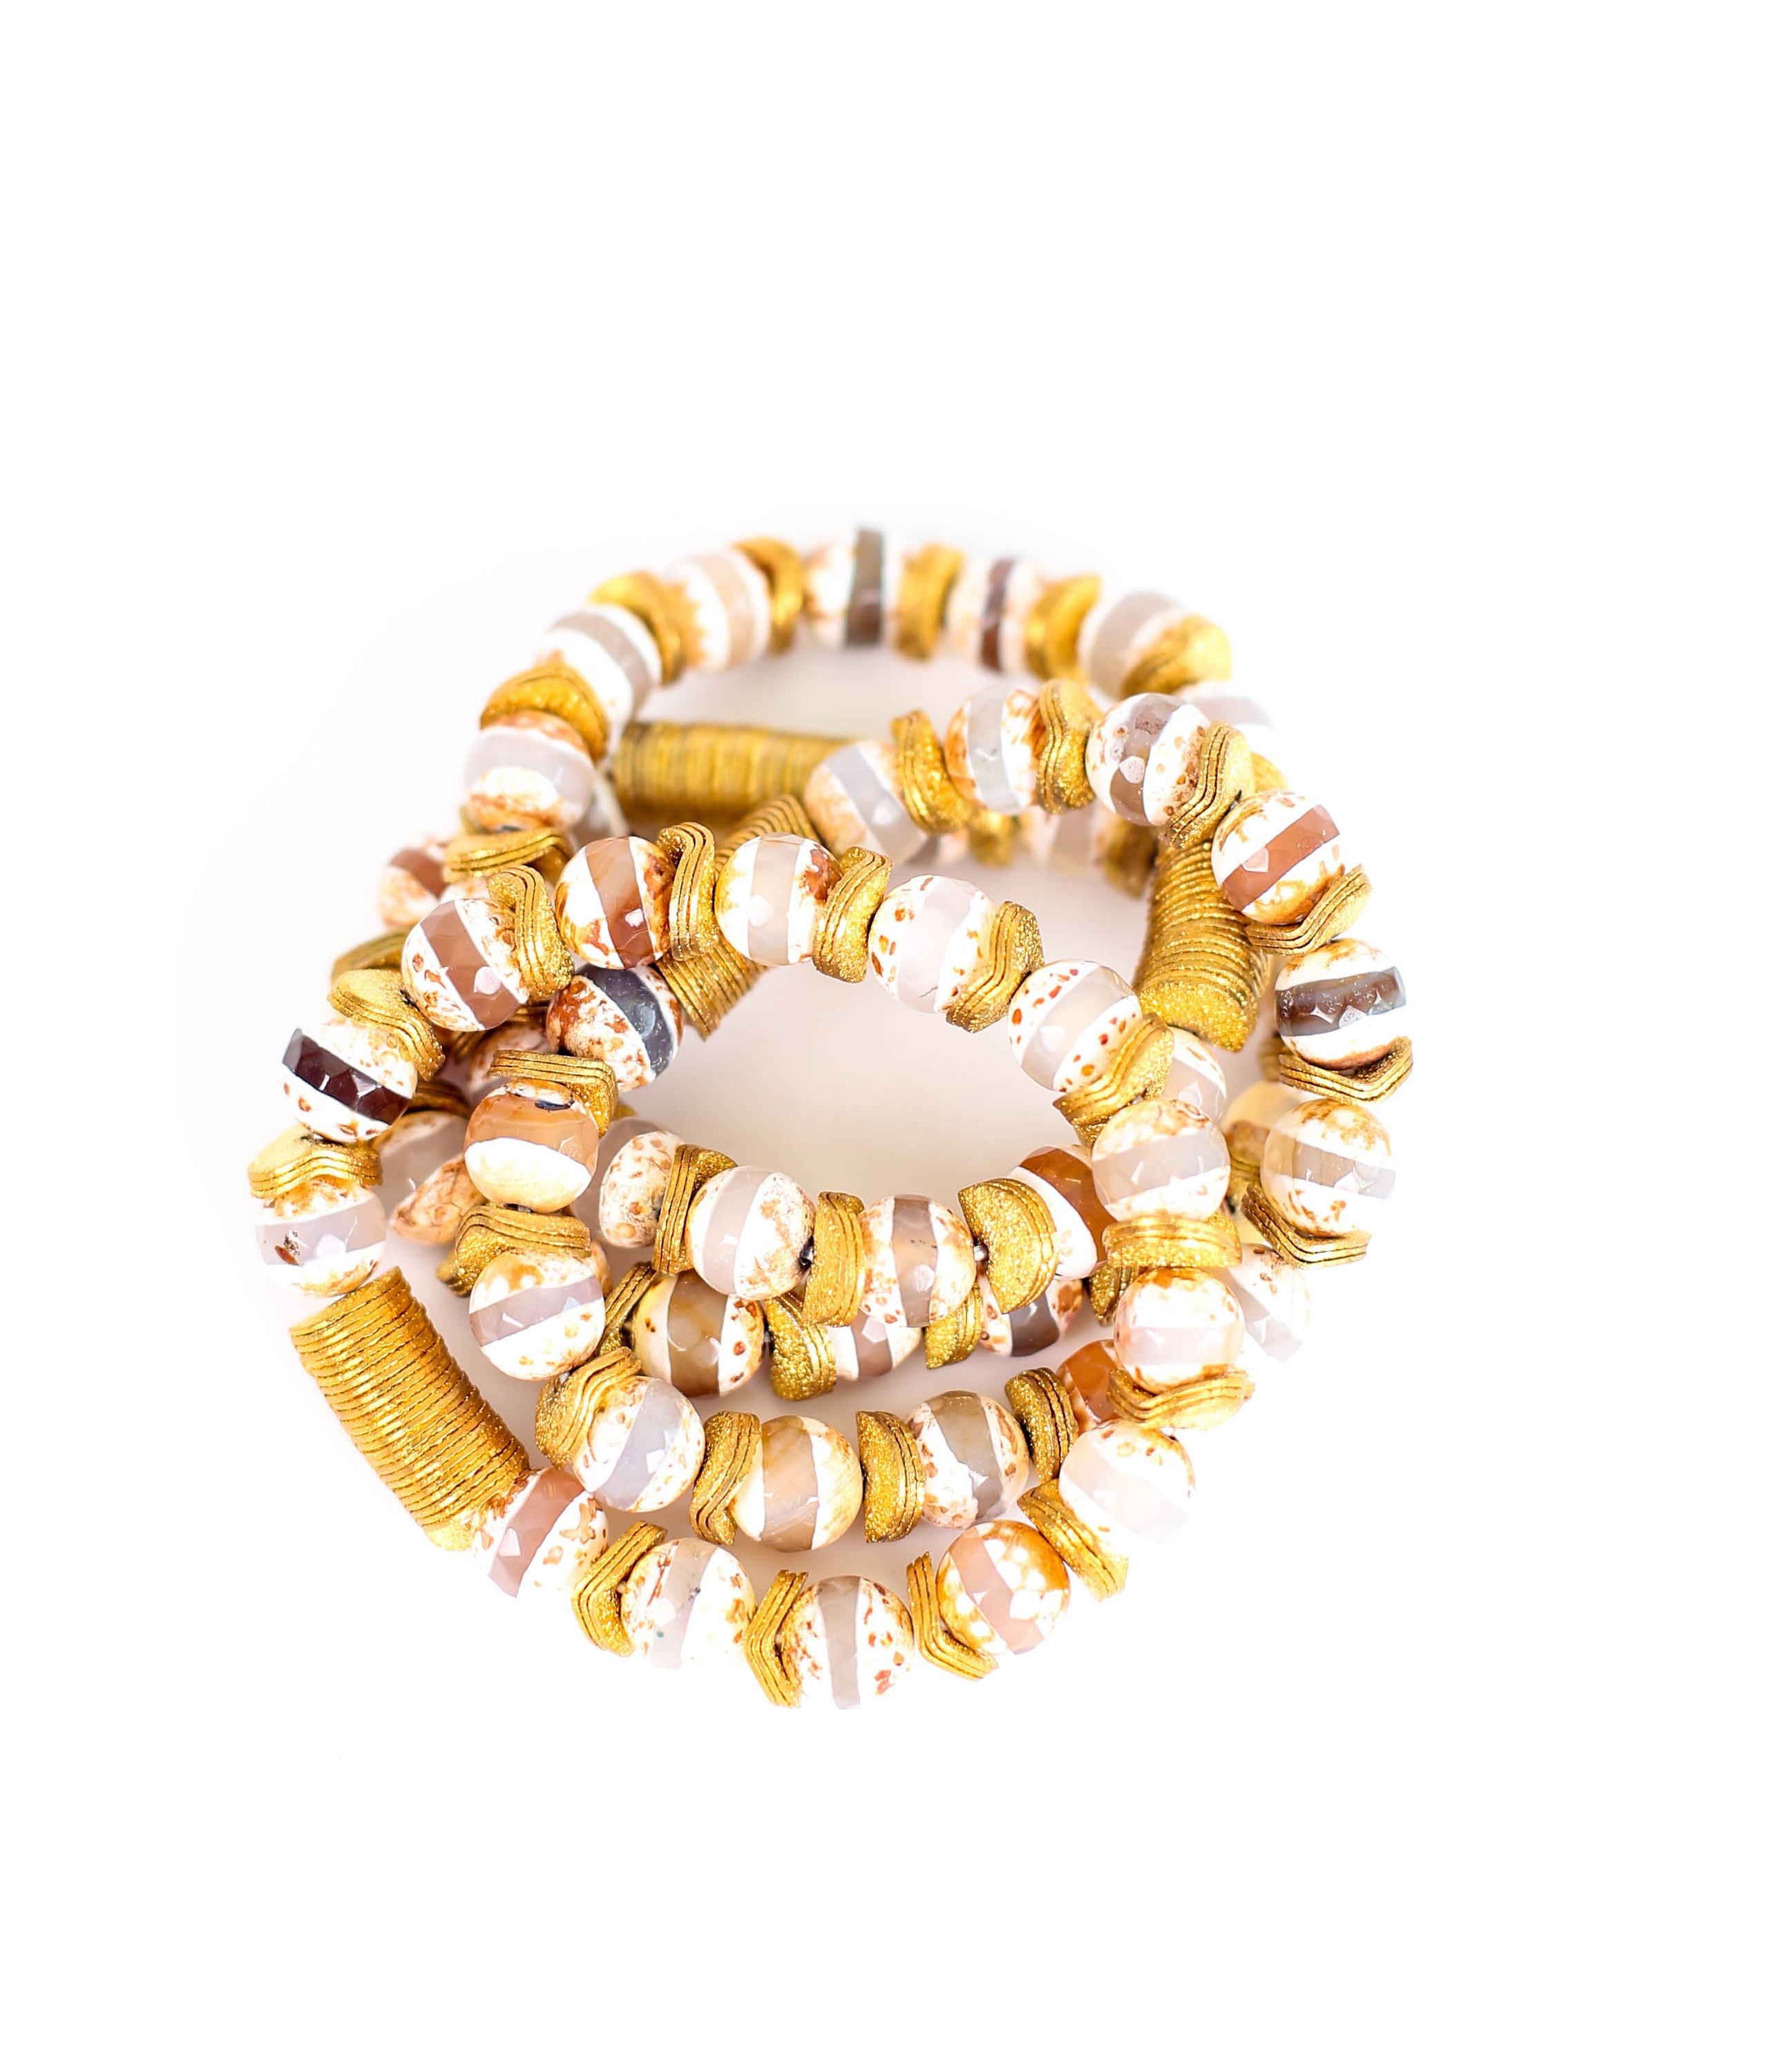 Tibetan Agate Gemstone Bracelet With Gold Detail